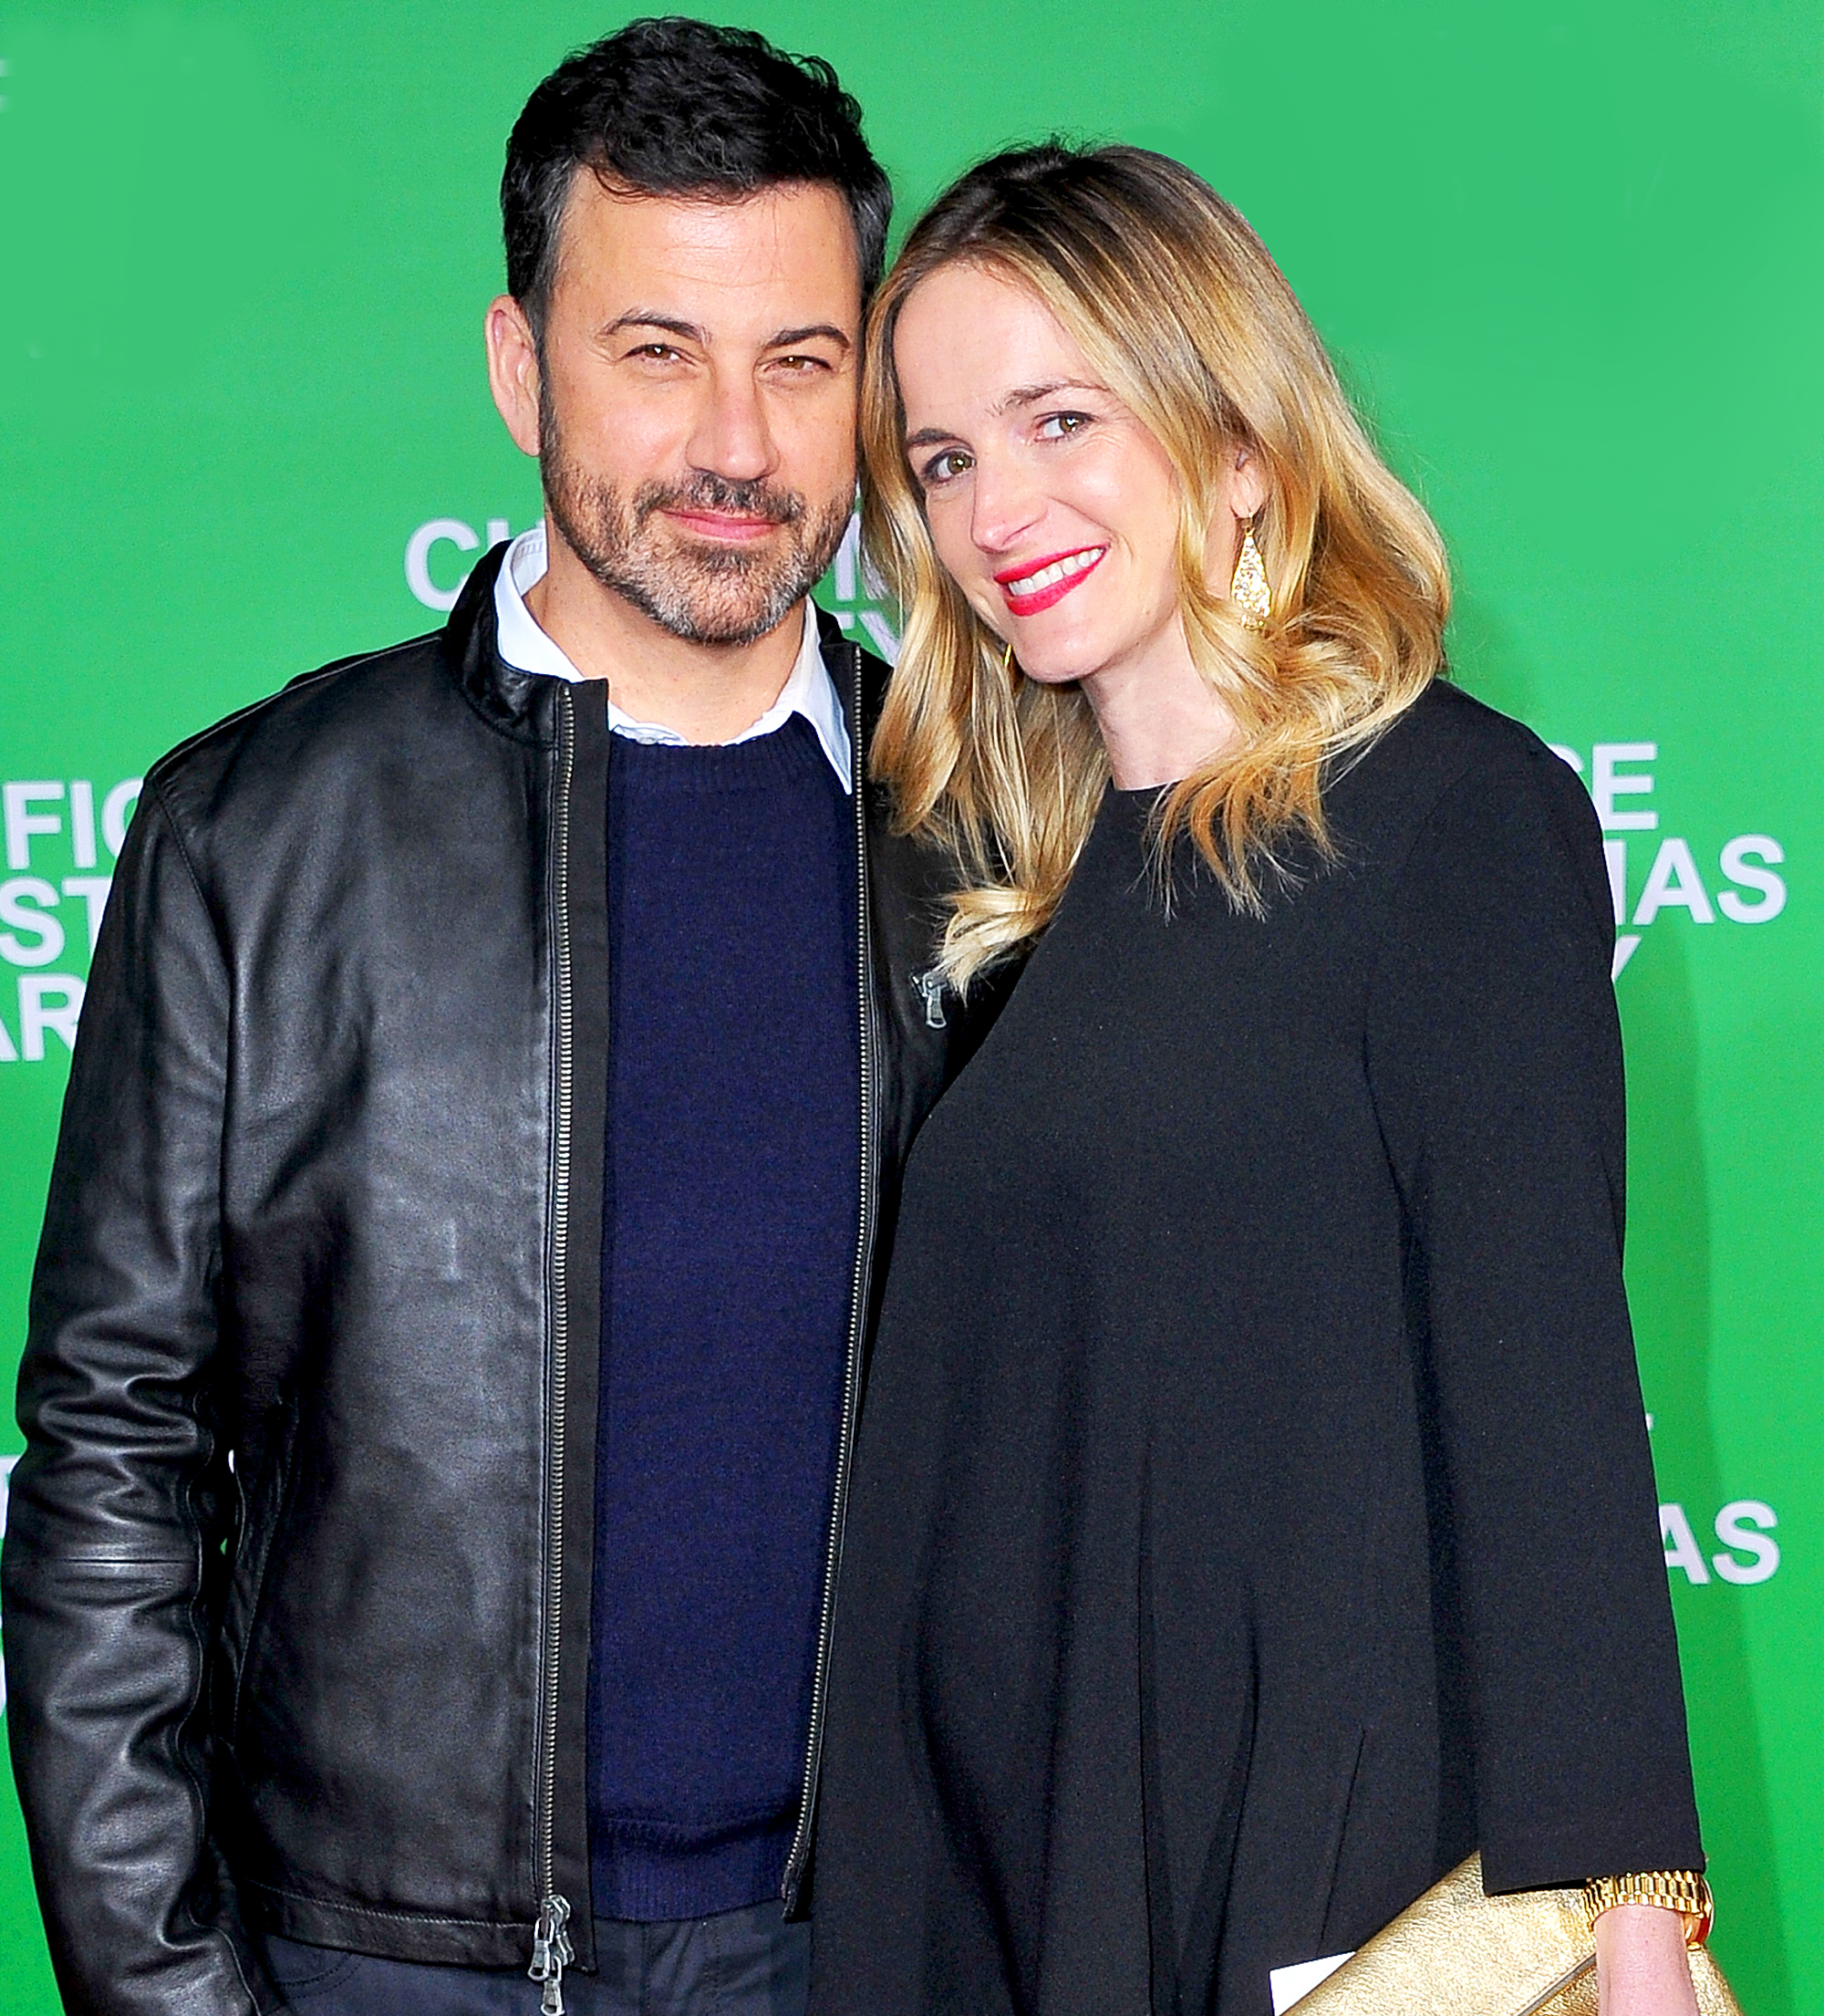 Jimmy Kimmel and wife Molly McNearney attend the premiere of Office Christmas Party at Regency Village Theatre in Westwood, California.